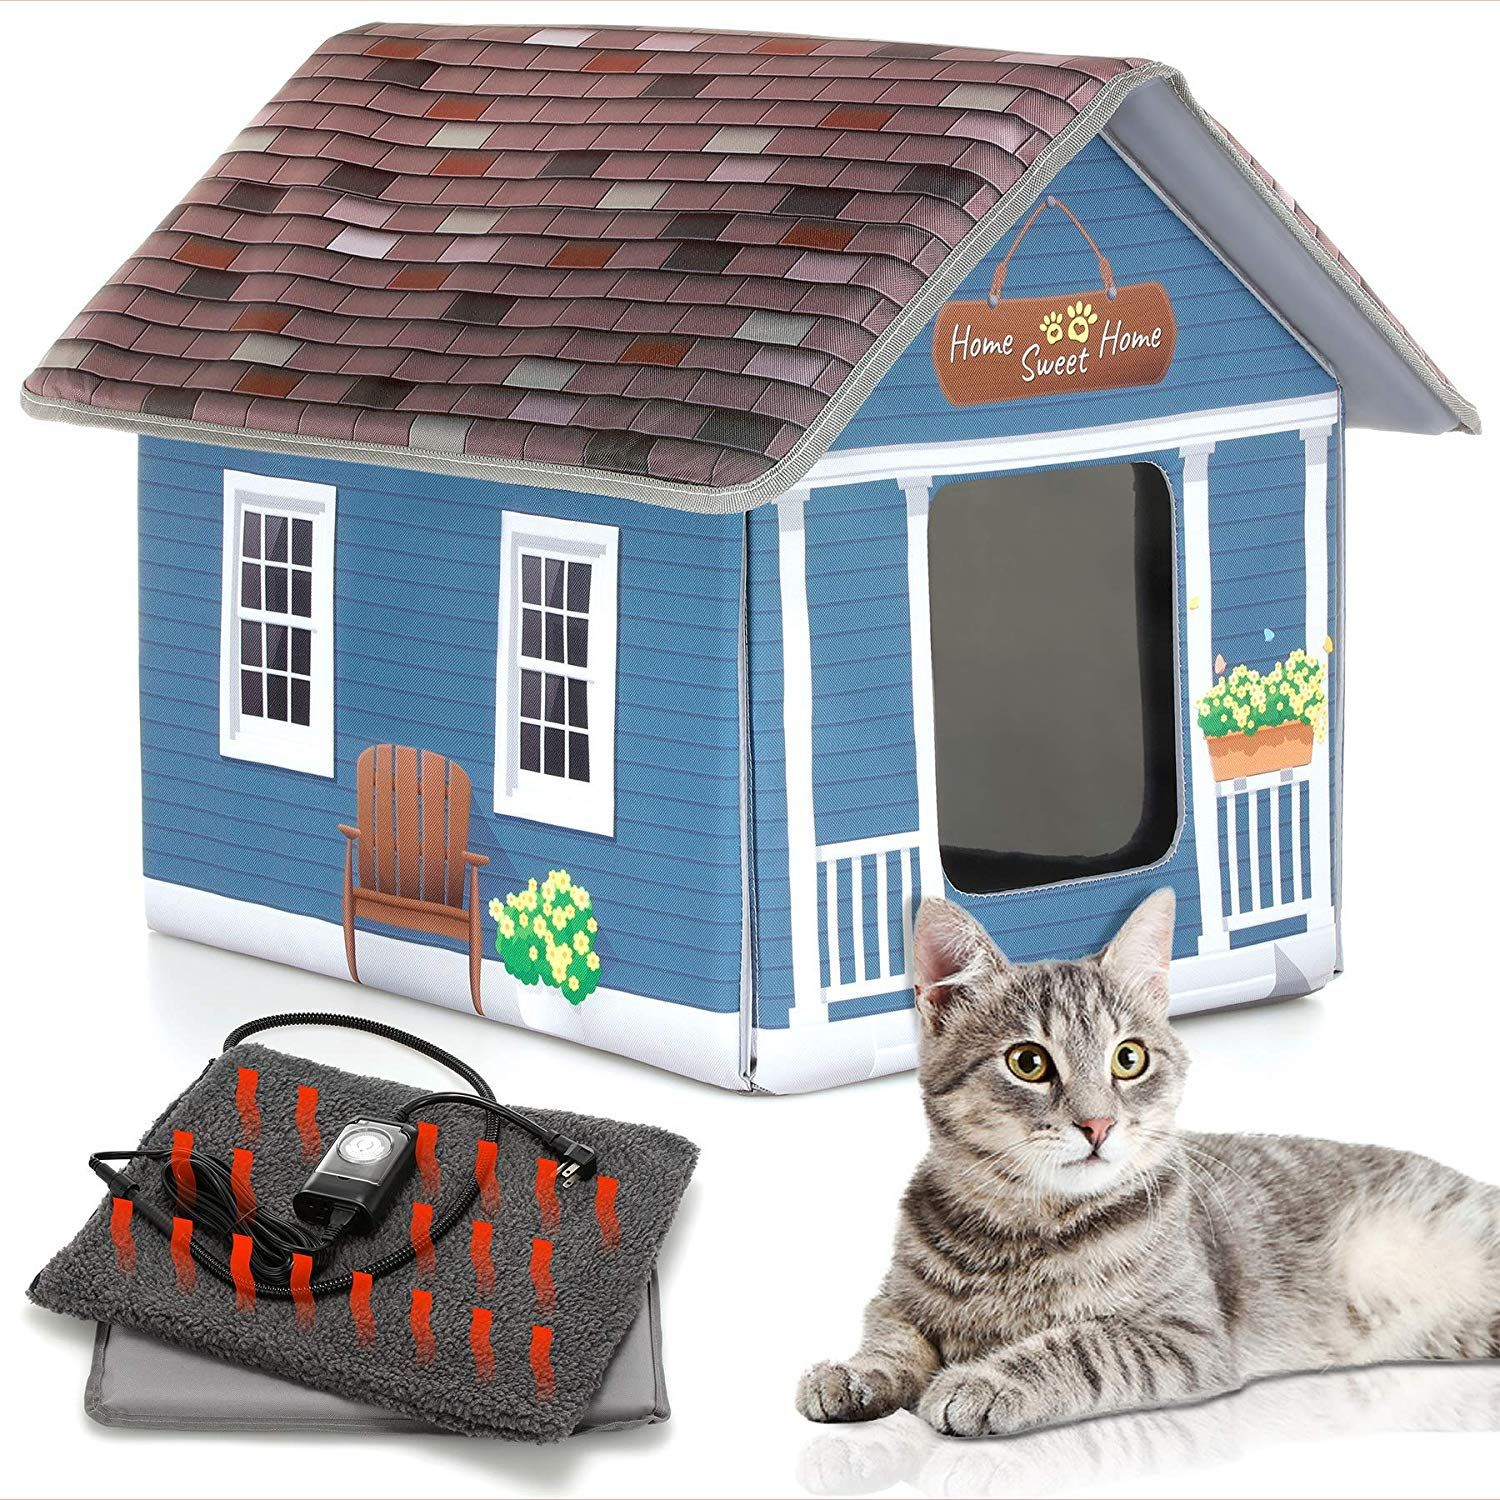 Heated Cat Houses for Outdoor Cats tops the charts in